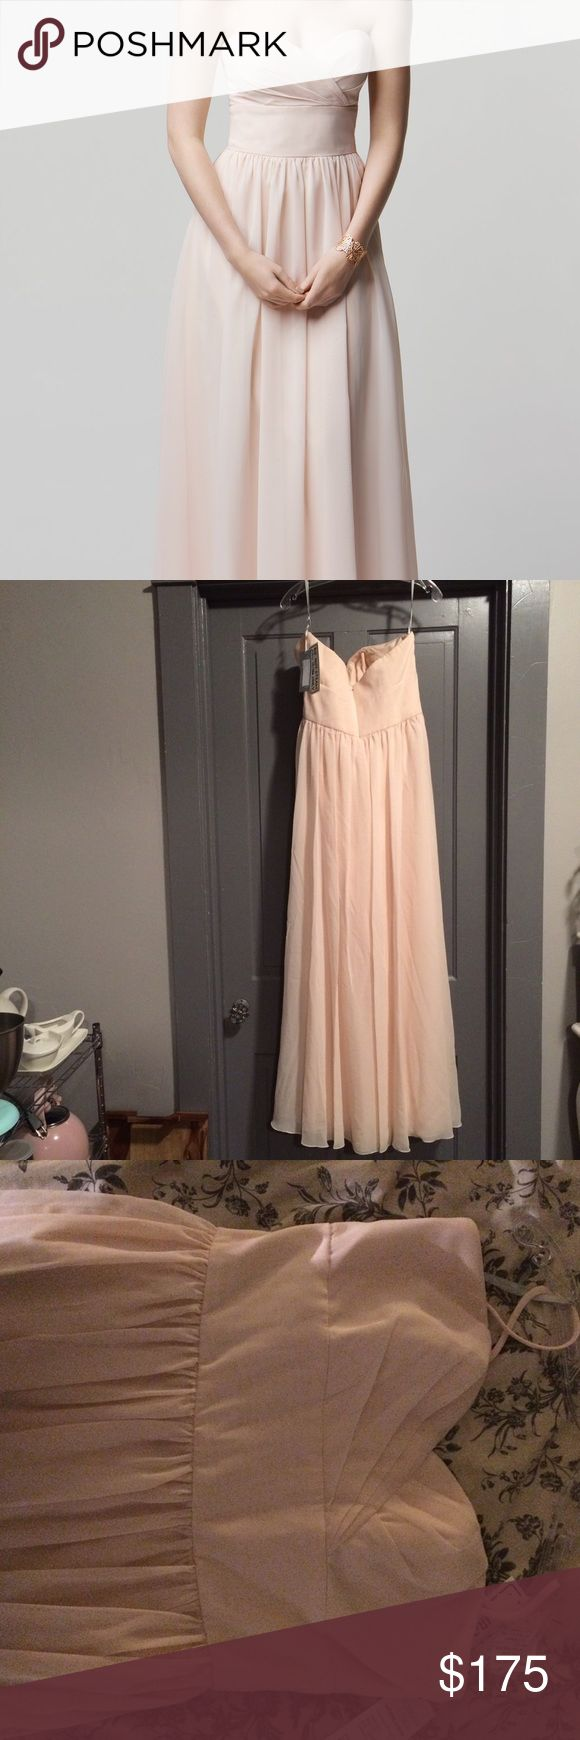 """NWT Wtoo Blush Chiffon Bridesmaid Prom Gown This is a stunning, blush pink chiffon Bridesmaid dress NEW WITH TAGS NEVER WORN and UNALTERED!! This is a """"bridal"""" 14 so fits like a 10-14 depending on your bust measurement. This gown is perfect for a summer wedding, black tie event, or prom. I originally paid $300 at the local bridal boutique so if you're a Bridesmaid on a budget this is a great steal! Any questions or for more pictures please let me know! 🌷 Wtoo Dresses Wedding"""